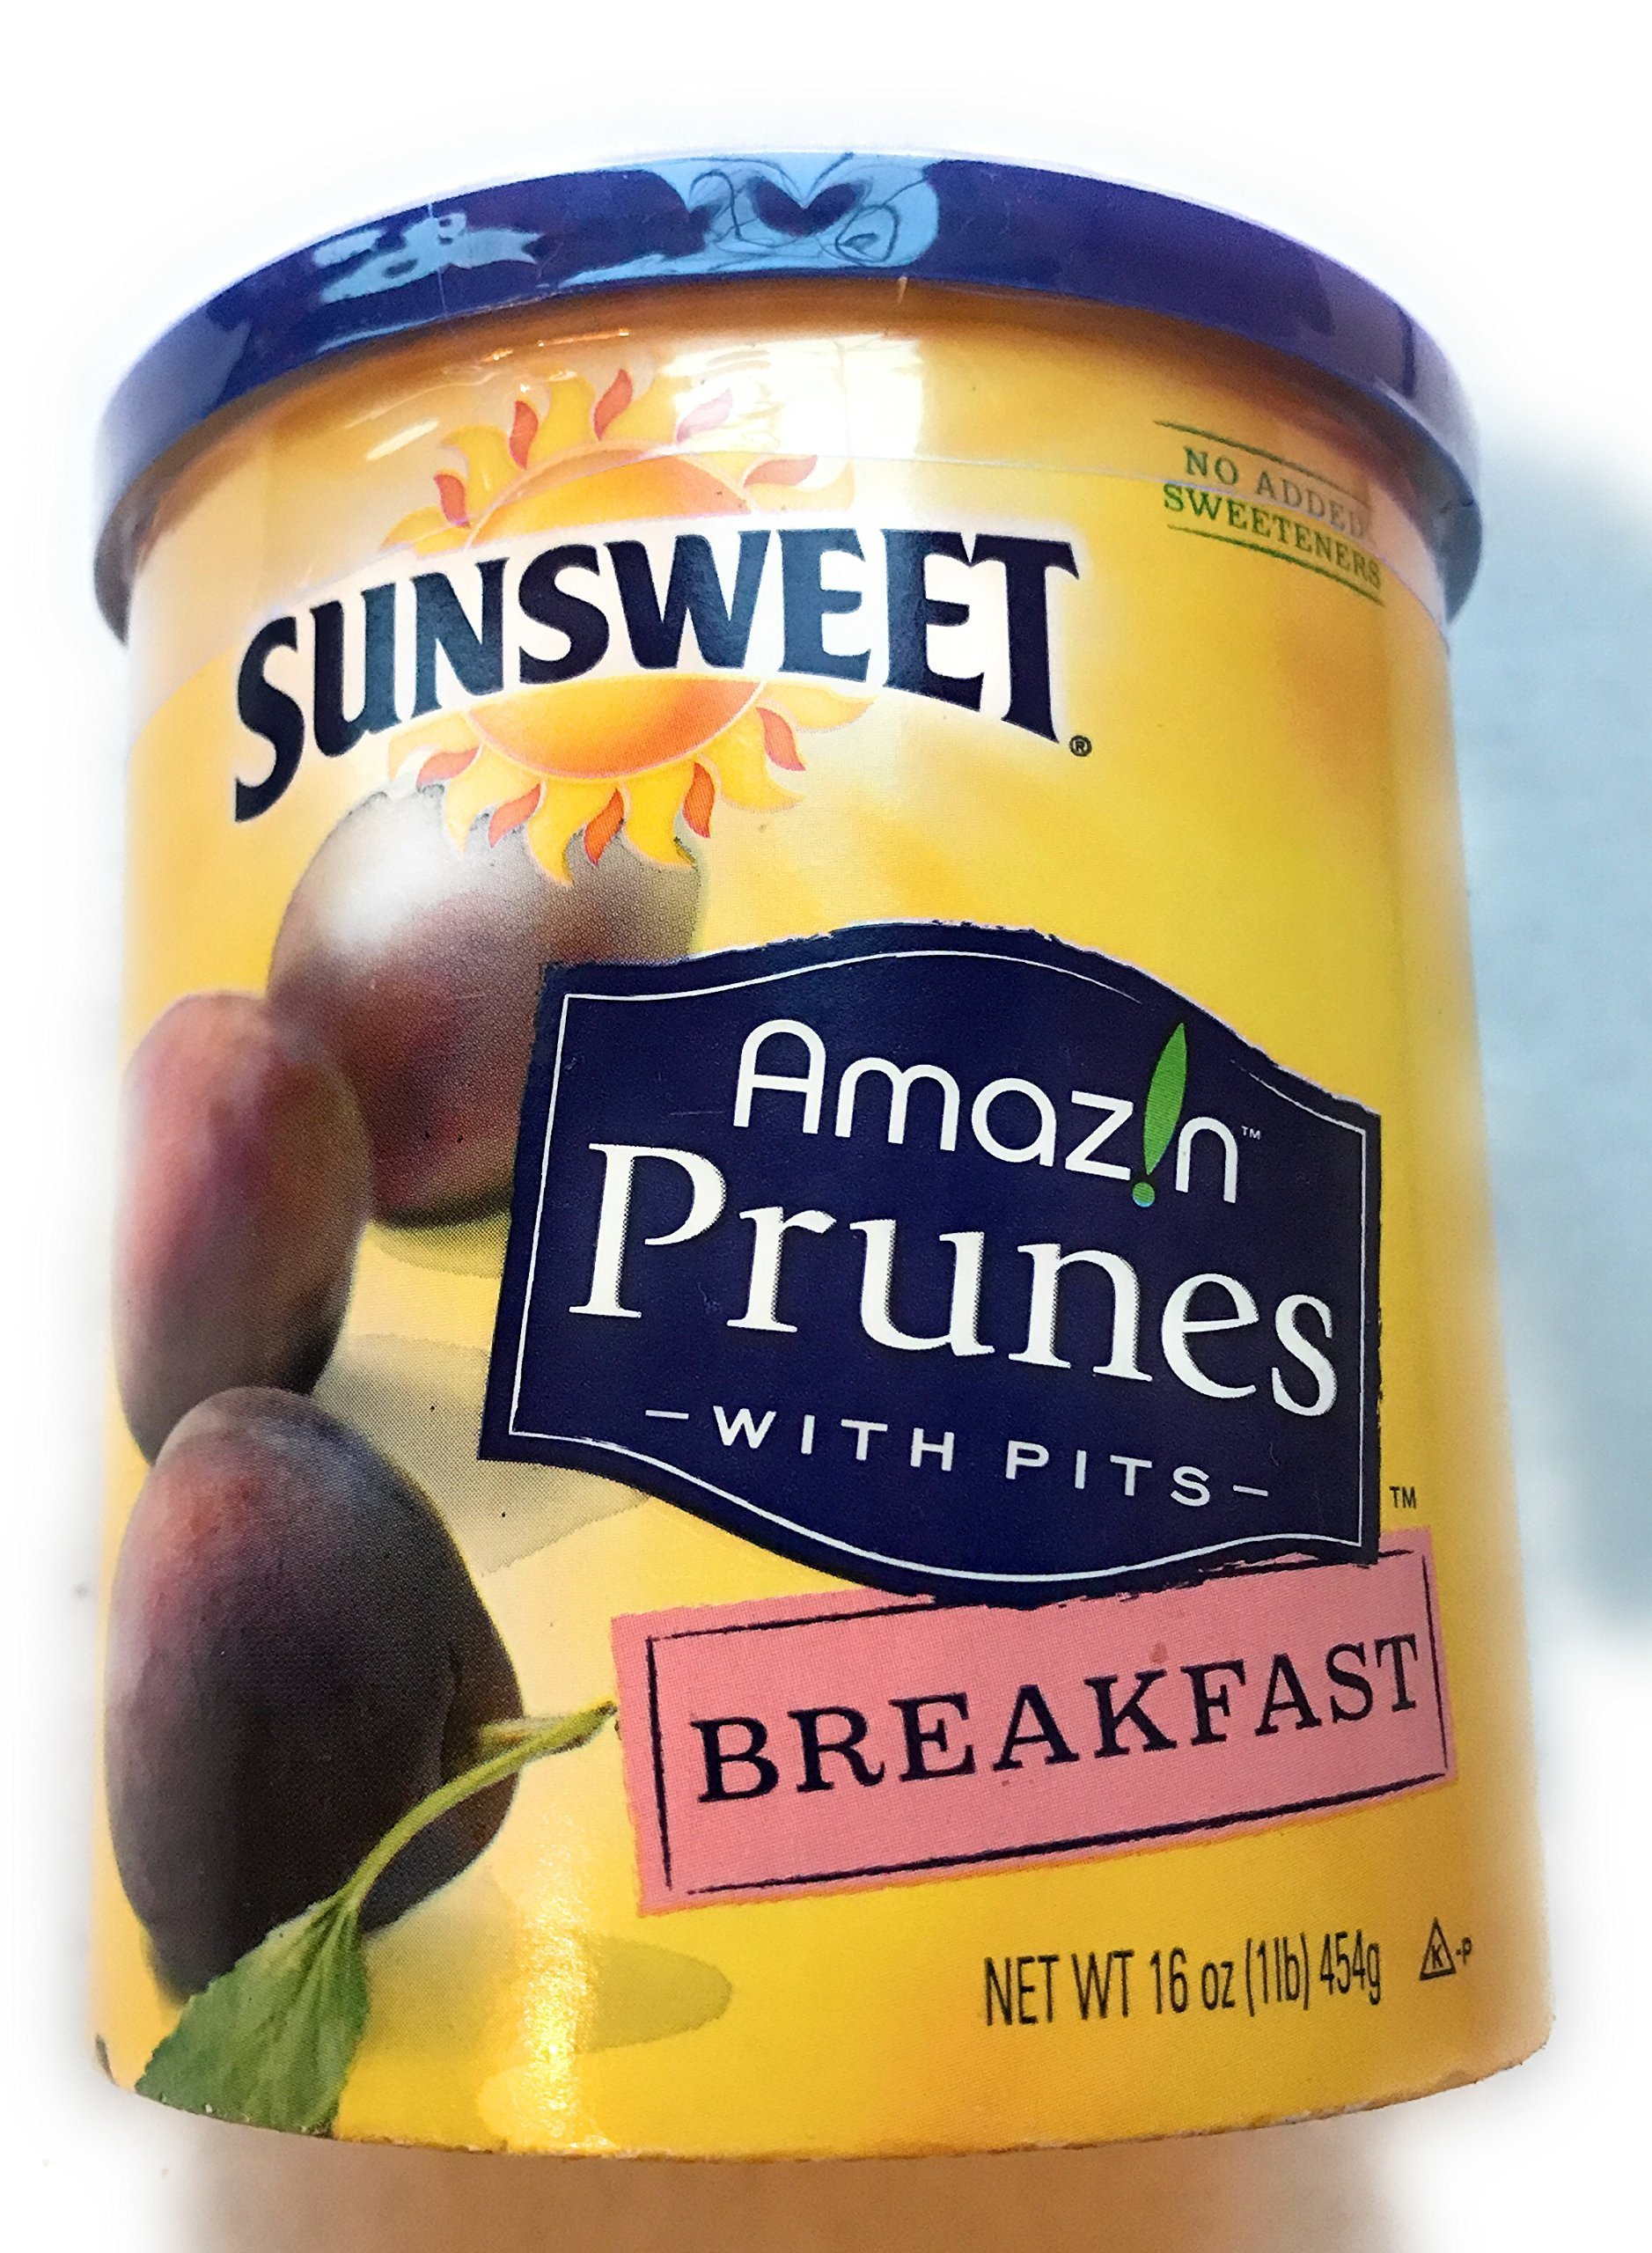 Sunsweet Amazin Prunes With Pits Breakfast Prunes 16 oz Container